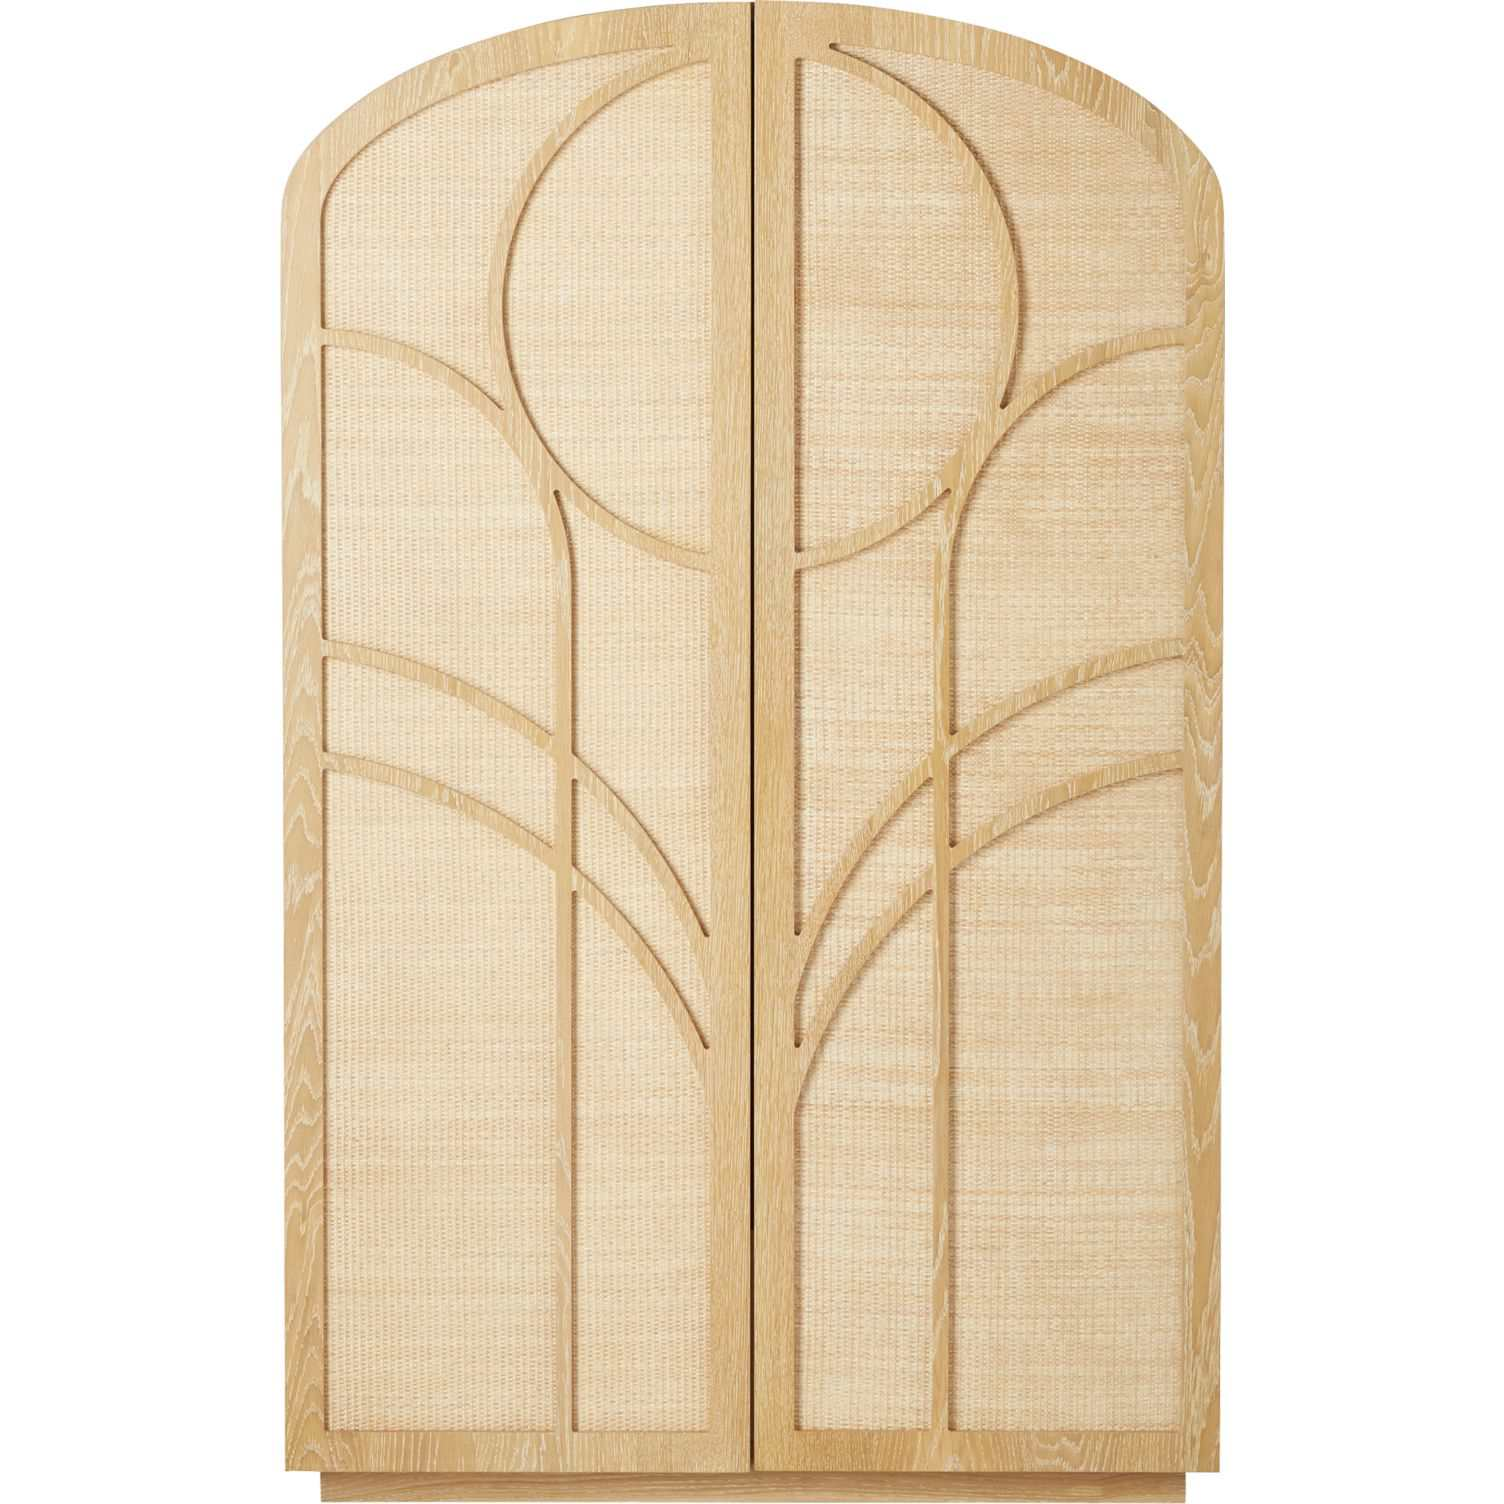 Gracia Cane and Wood Wardrobe